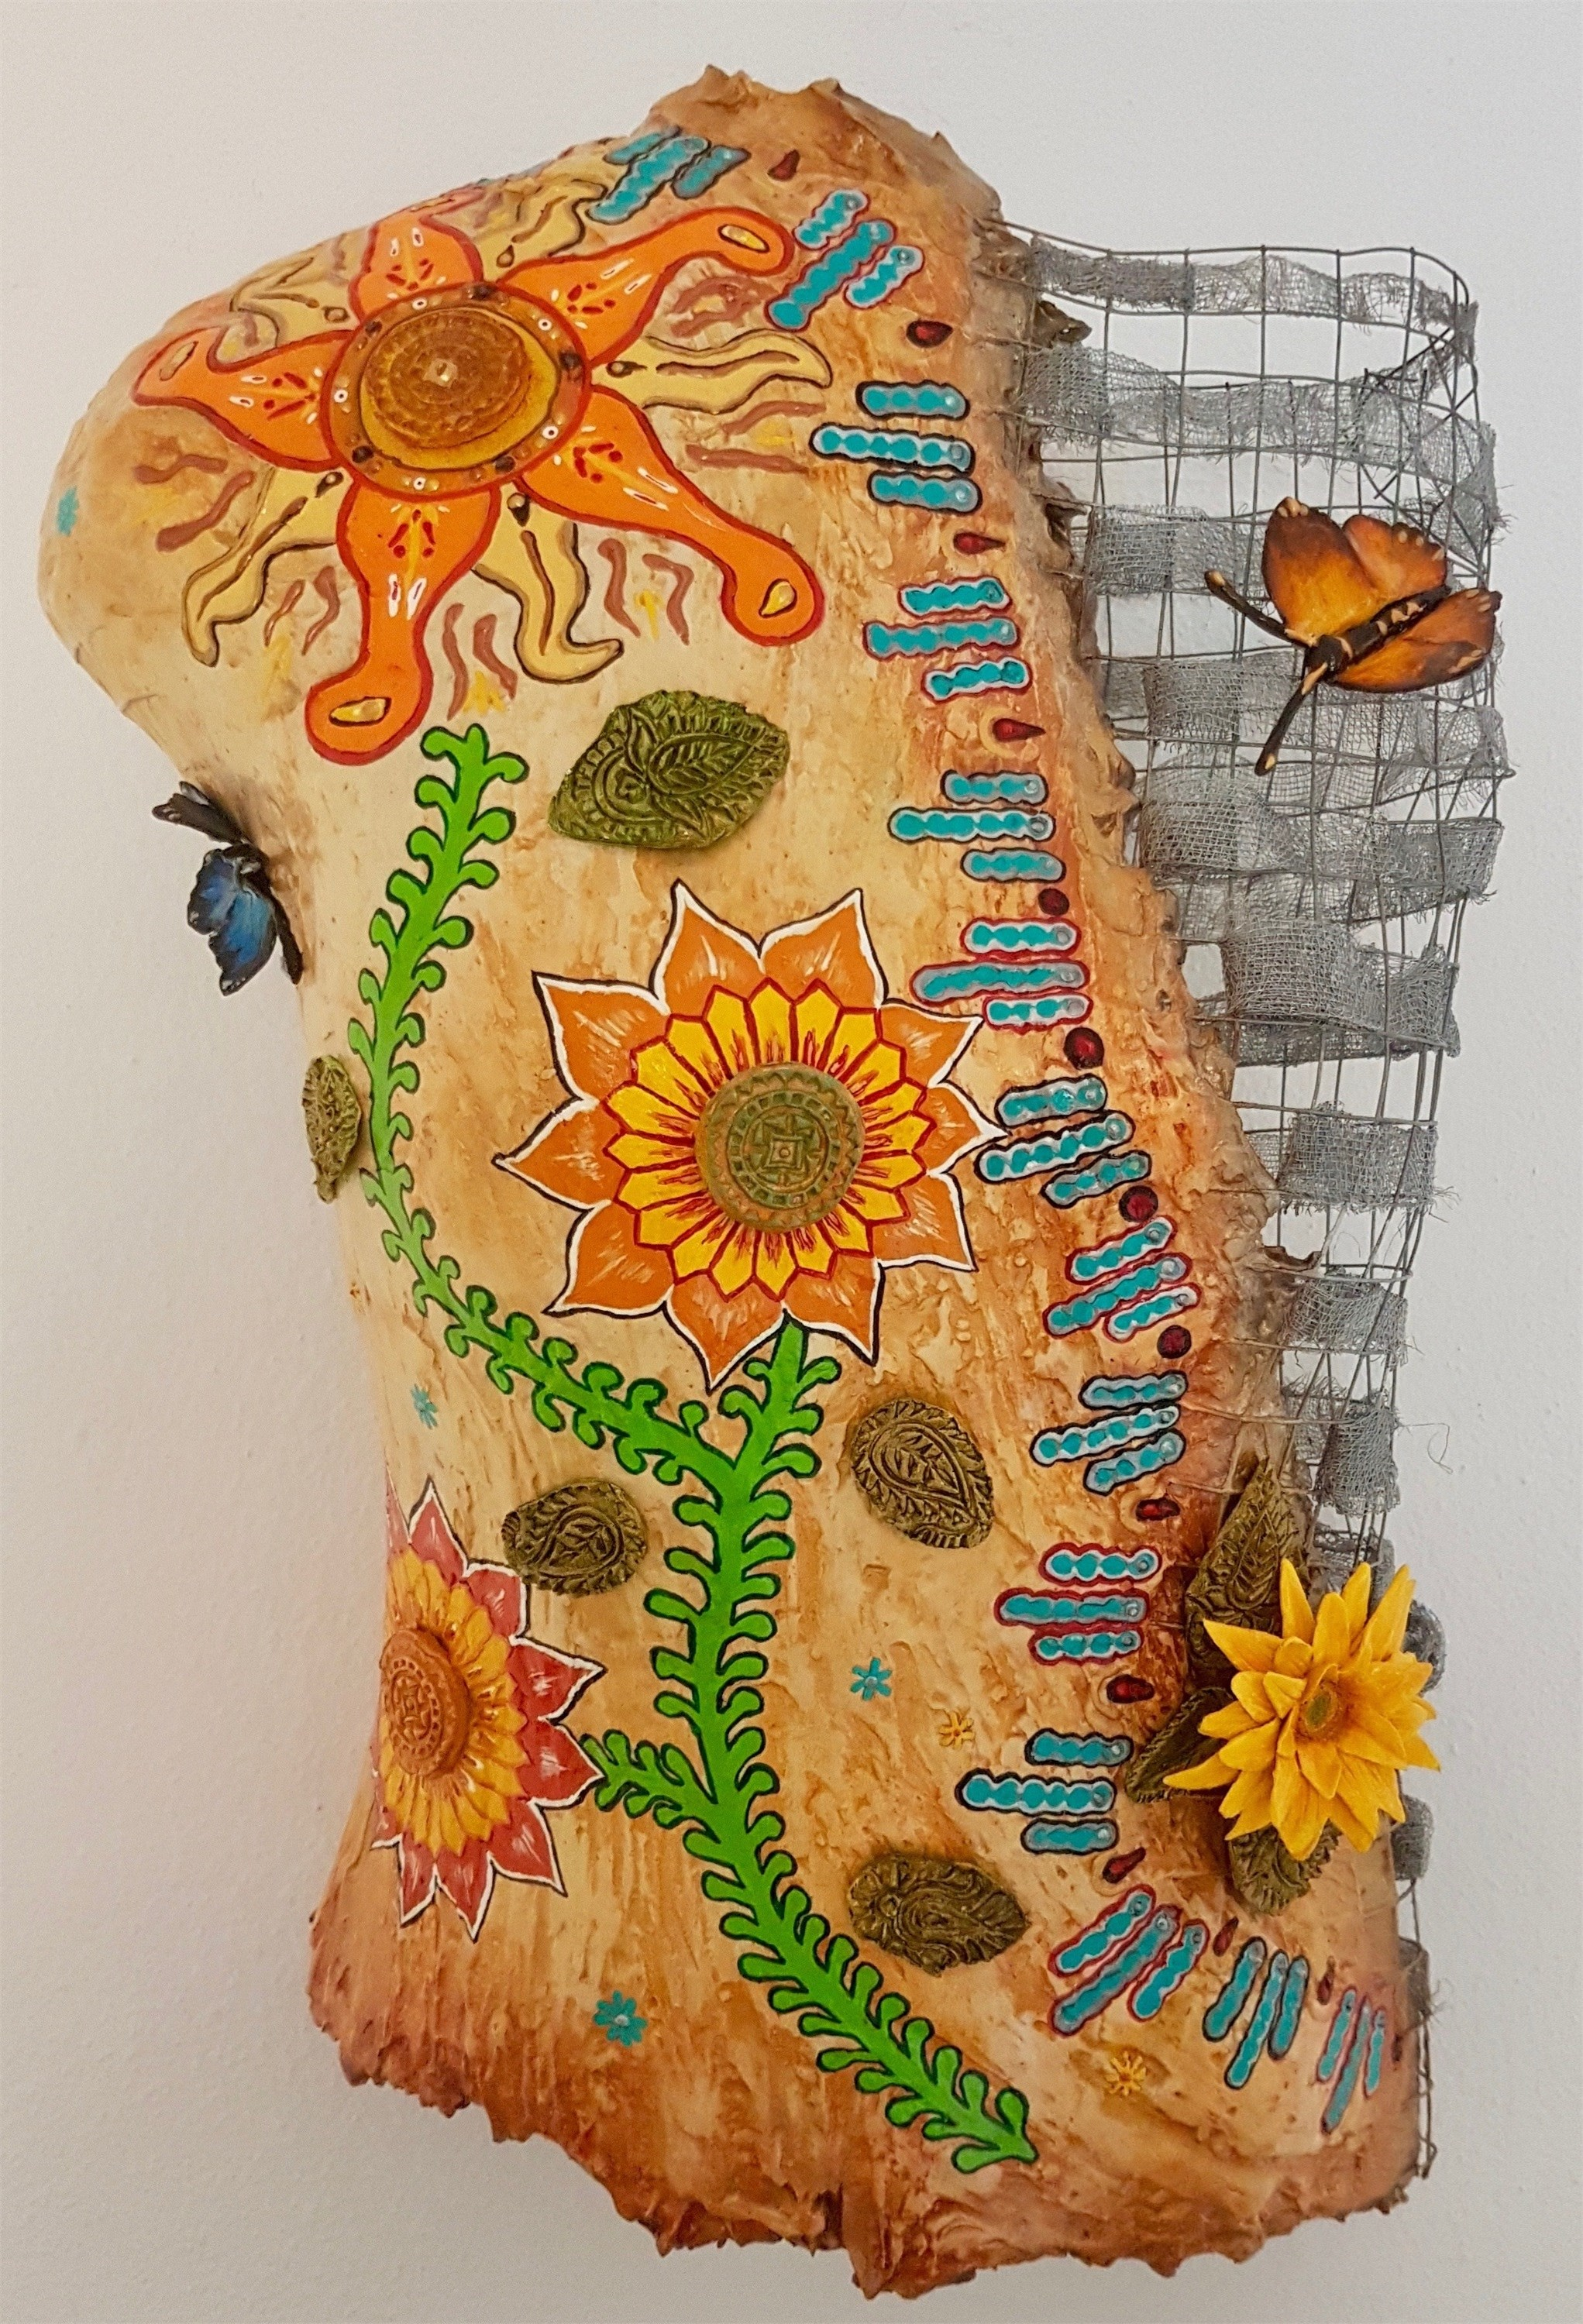 Sunflowers & Butterflies, original Abstract Clay Sculpture by Andrea Pinto (Art Sauvage)